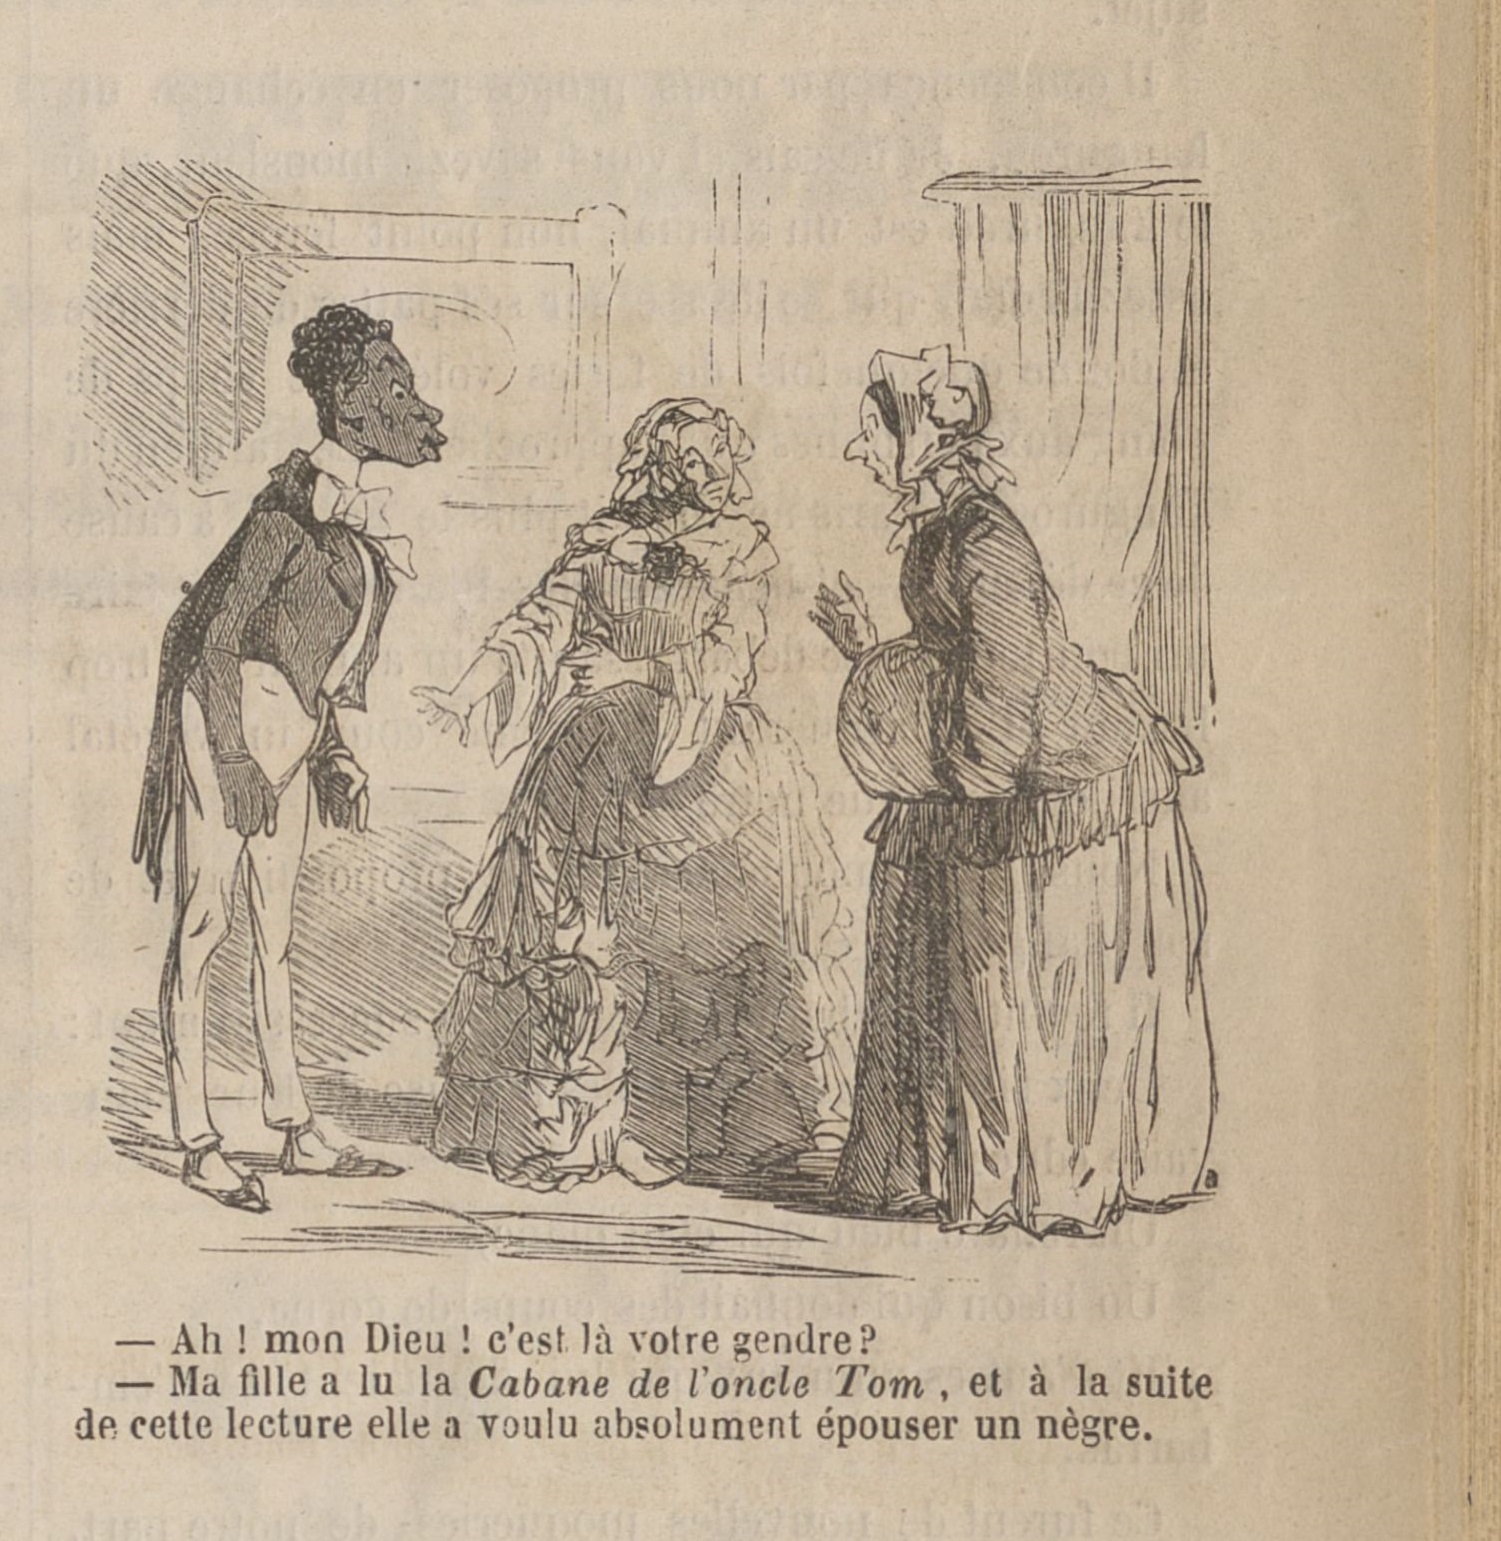 images/Le Charivari oncle Tom 28 nov 1852 vignette 3 Gallica BnF.jpg